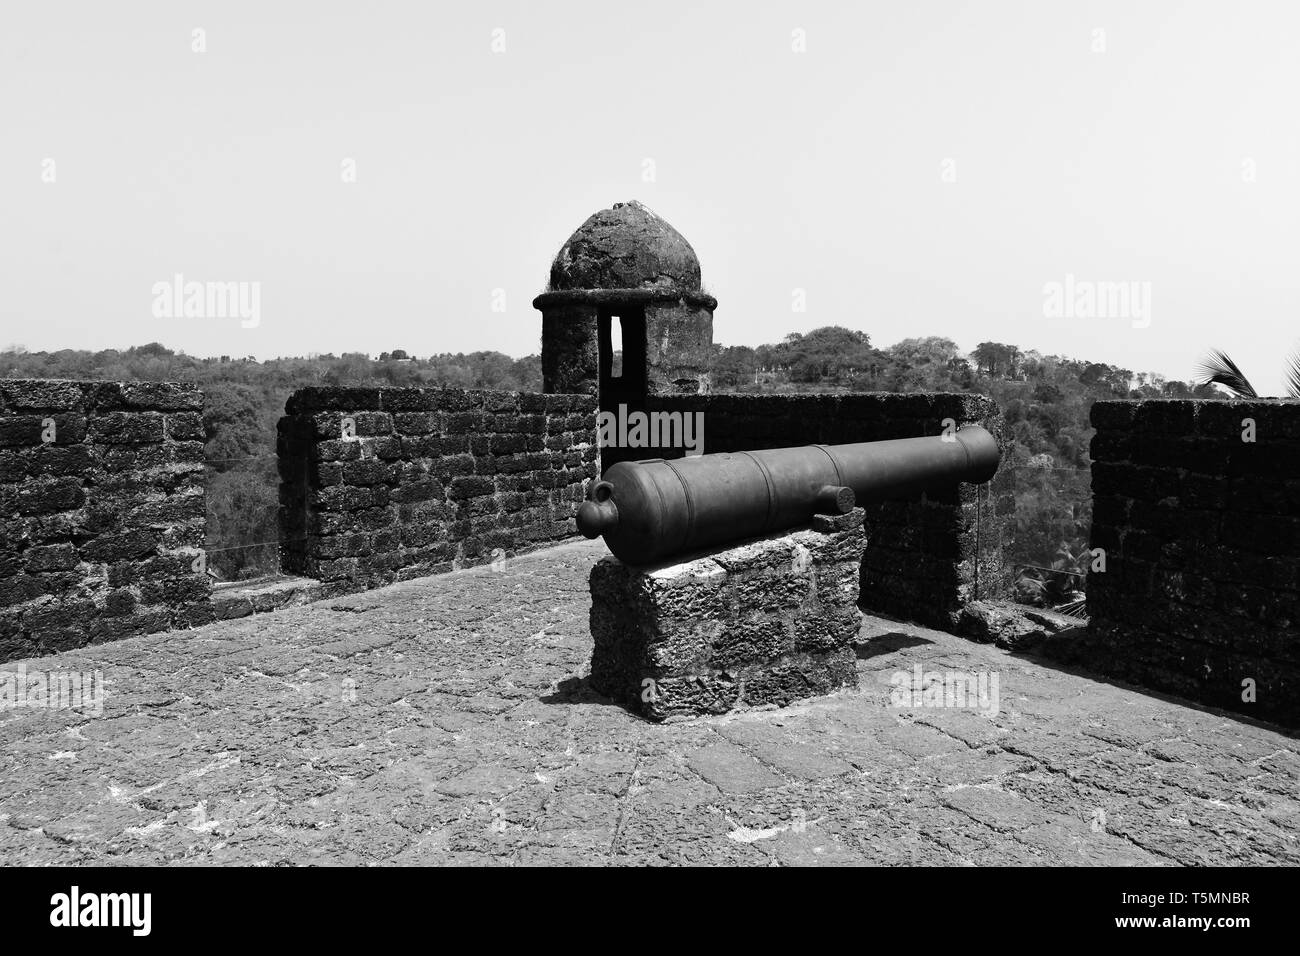 A Gun and watchtower at Reis Magos Fort in black and white. - Stock Image